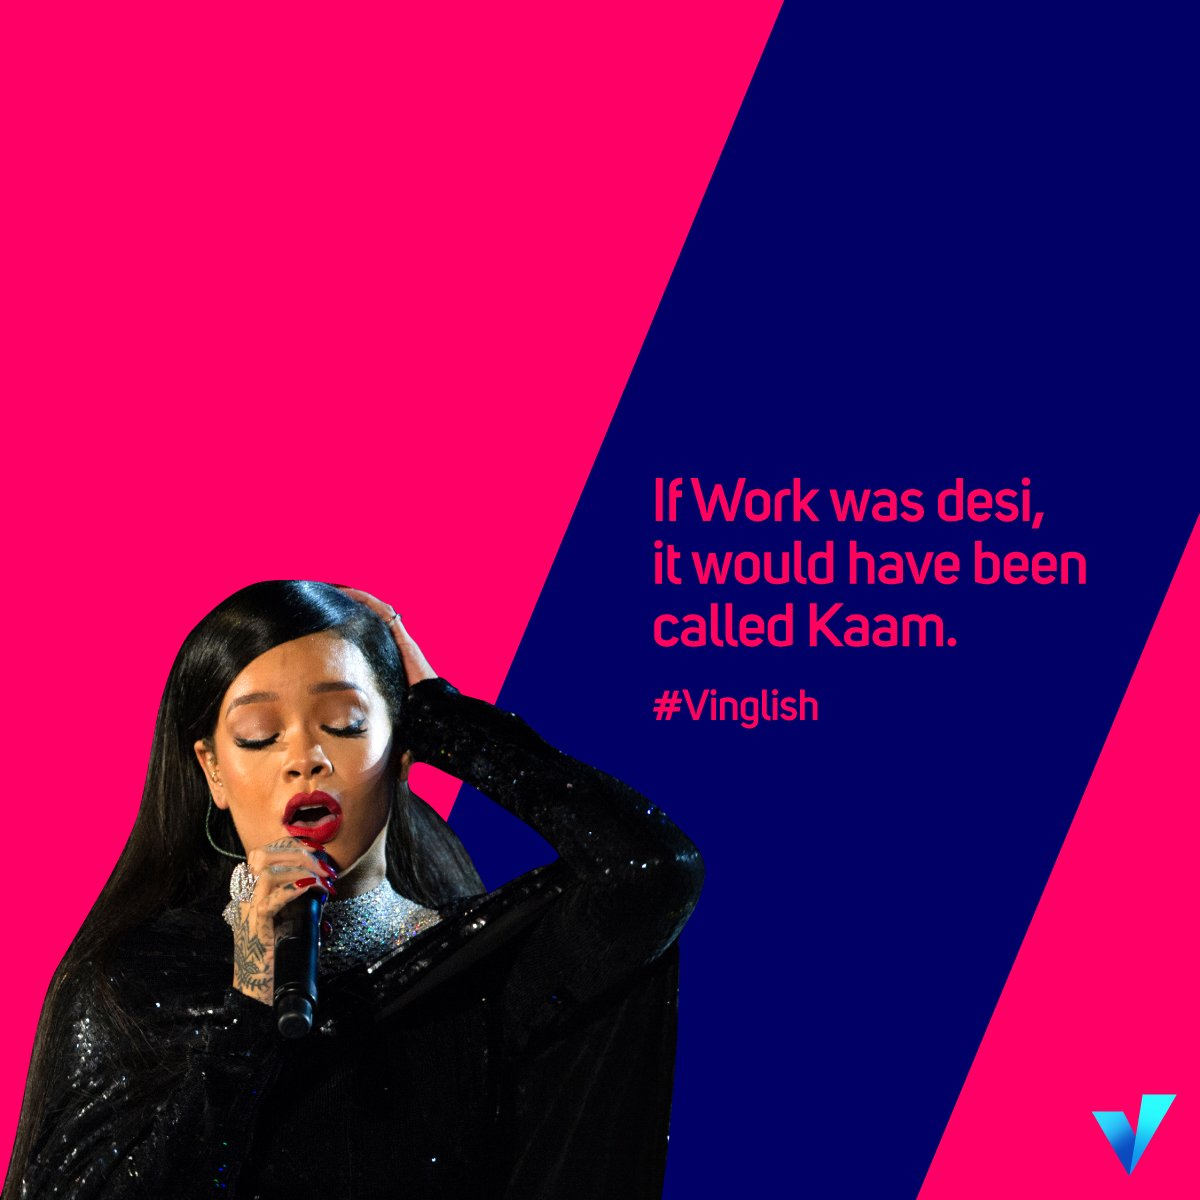 Just some work thoughts! #Vinglish #MidweekBlues https://t.co/7KF47Caw...